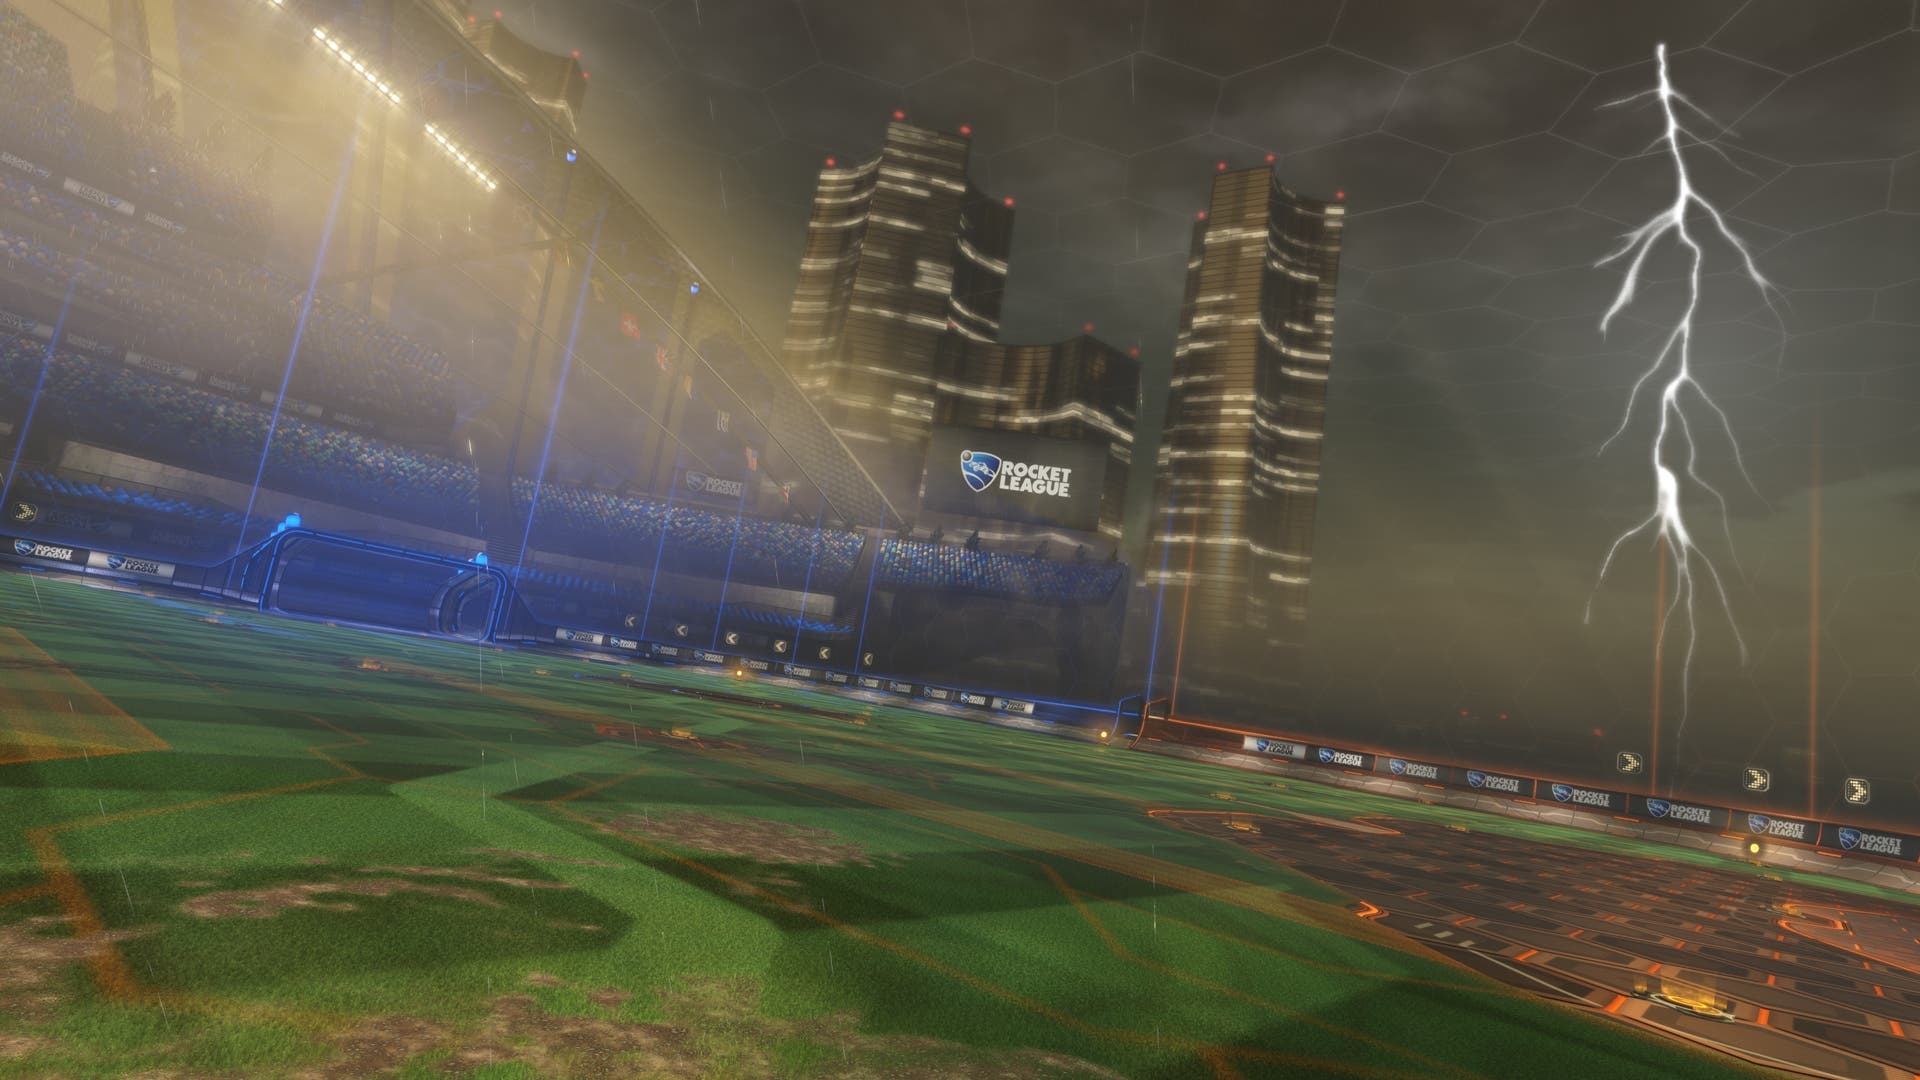 DFH-Stadium-Stormy-Rocket League